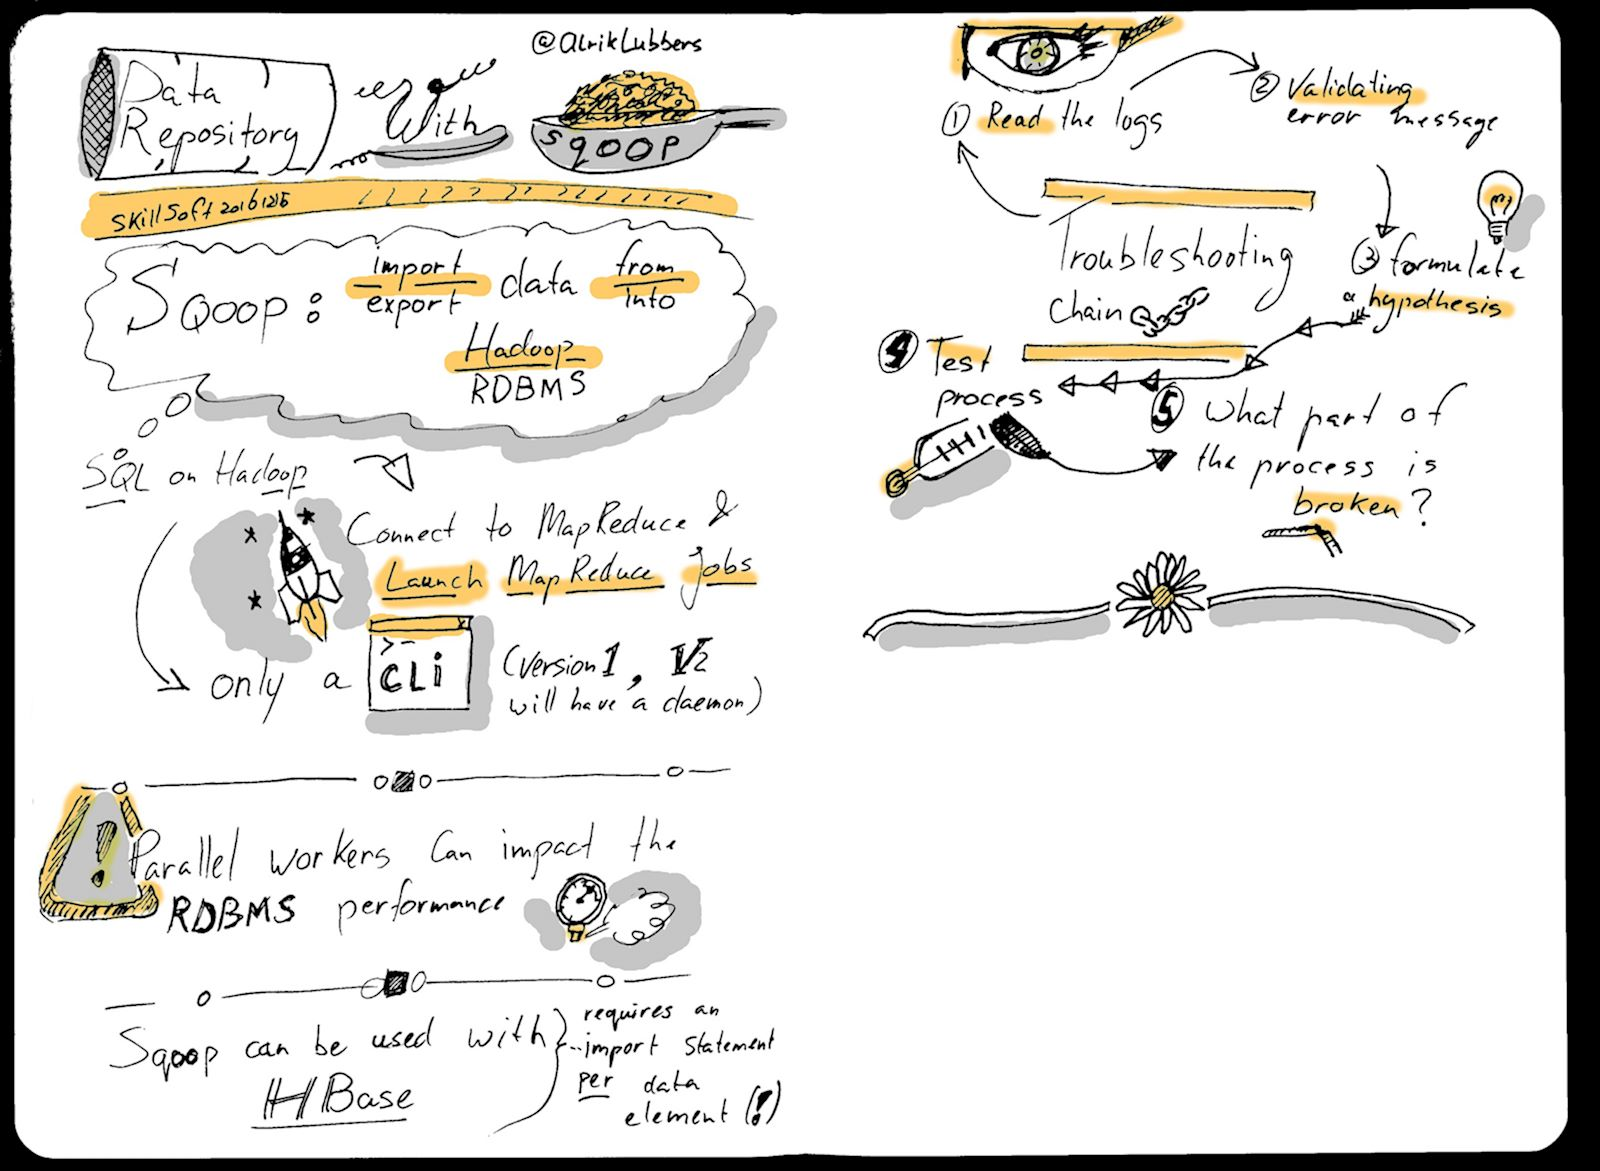 Sketchnote: Data Repository with Sqoop